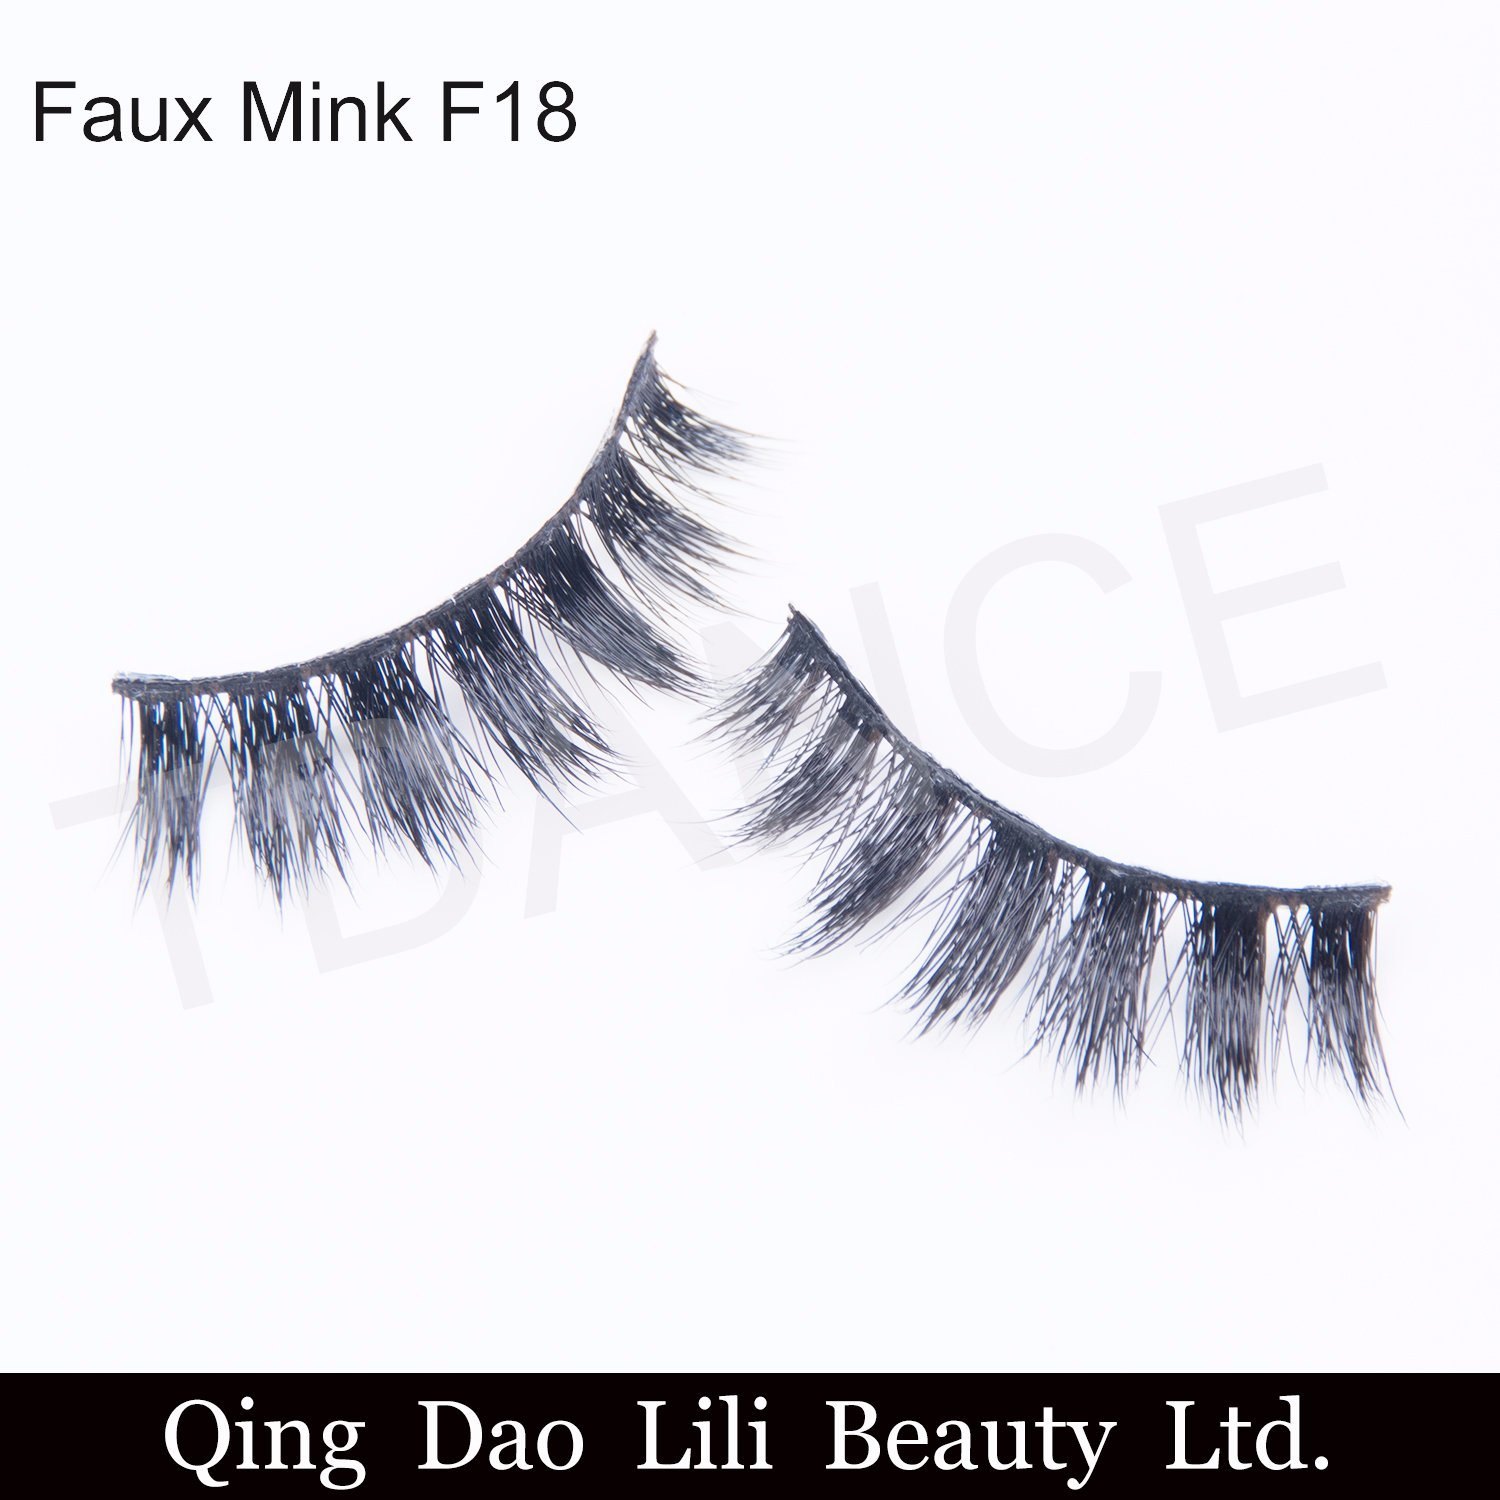 China Wholesale Price Faux Mink Lashes Own Brand Eyelash Synthetic